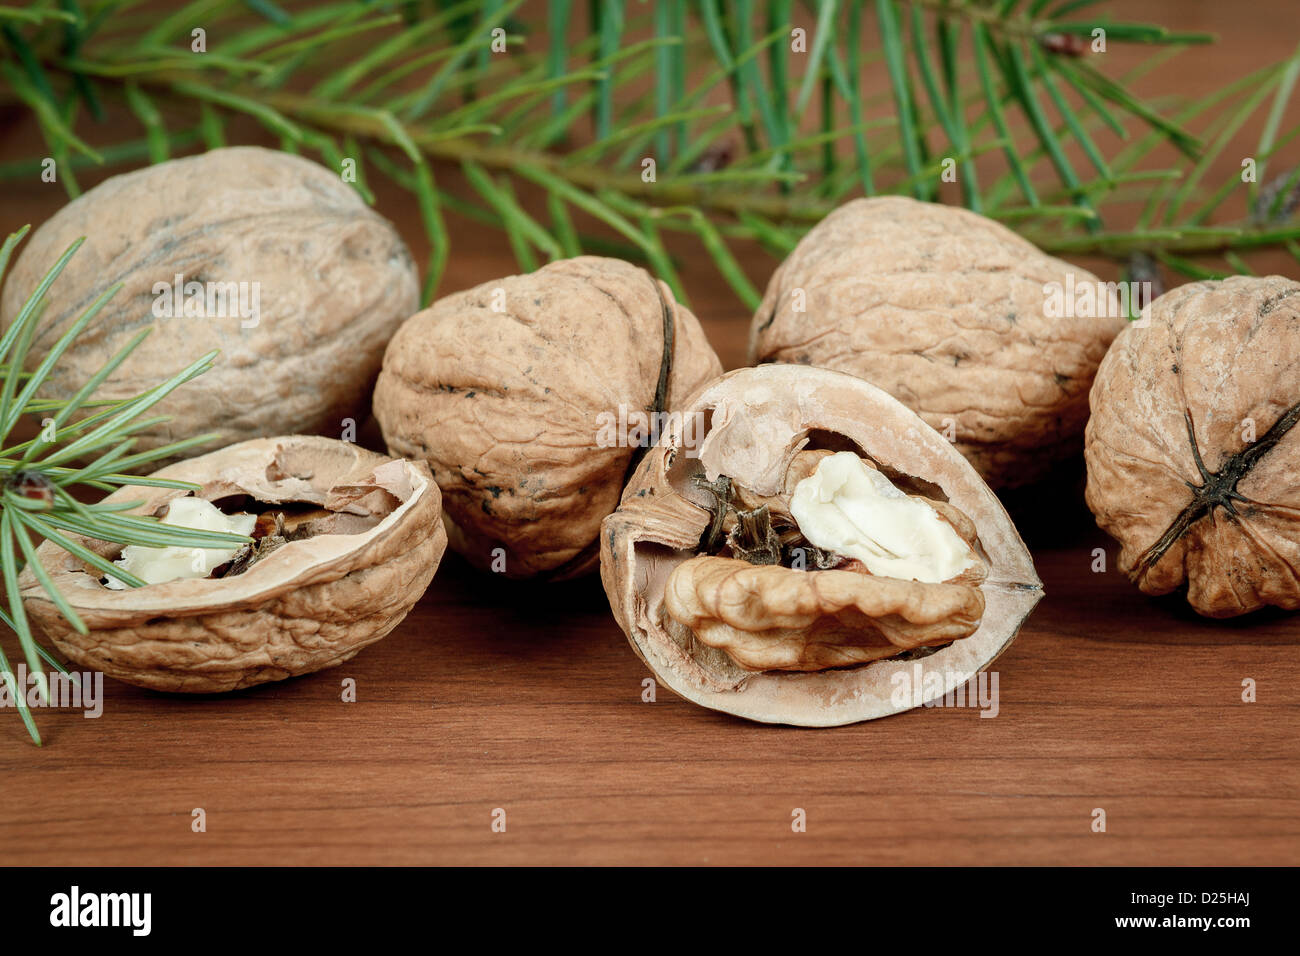 walnuts and a cracked walnut on wooden background with needles Stock Photo